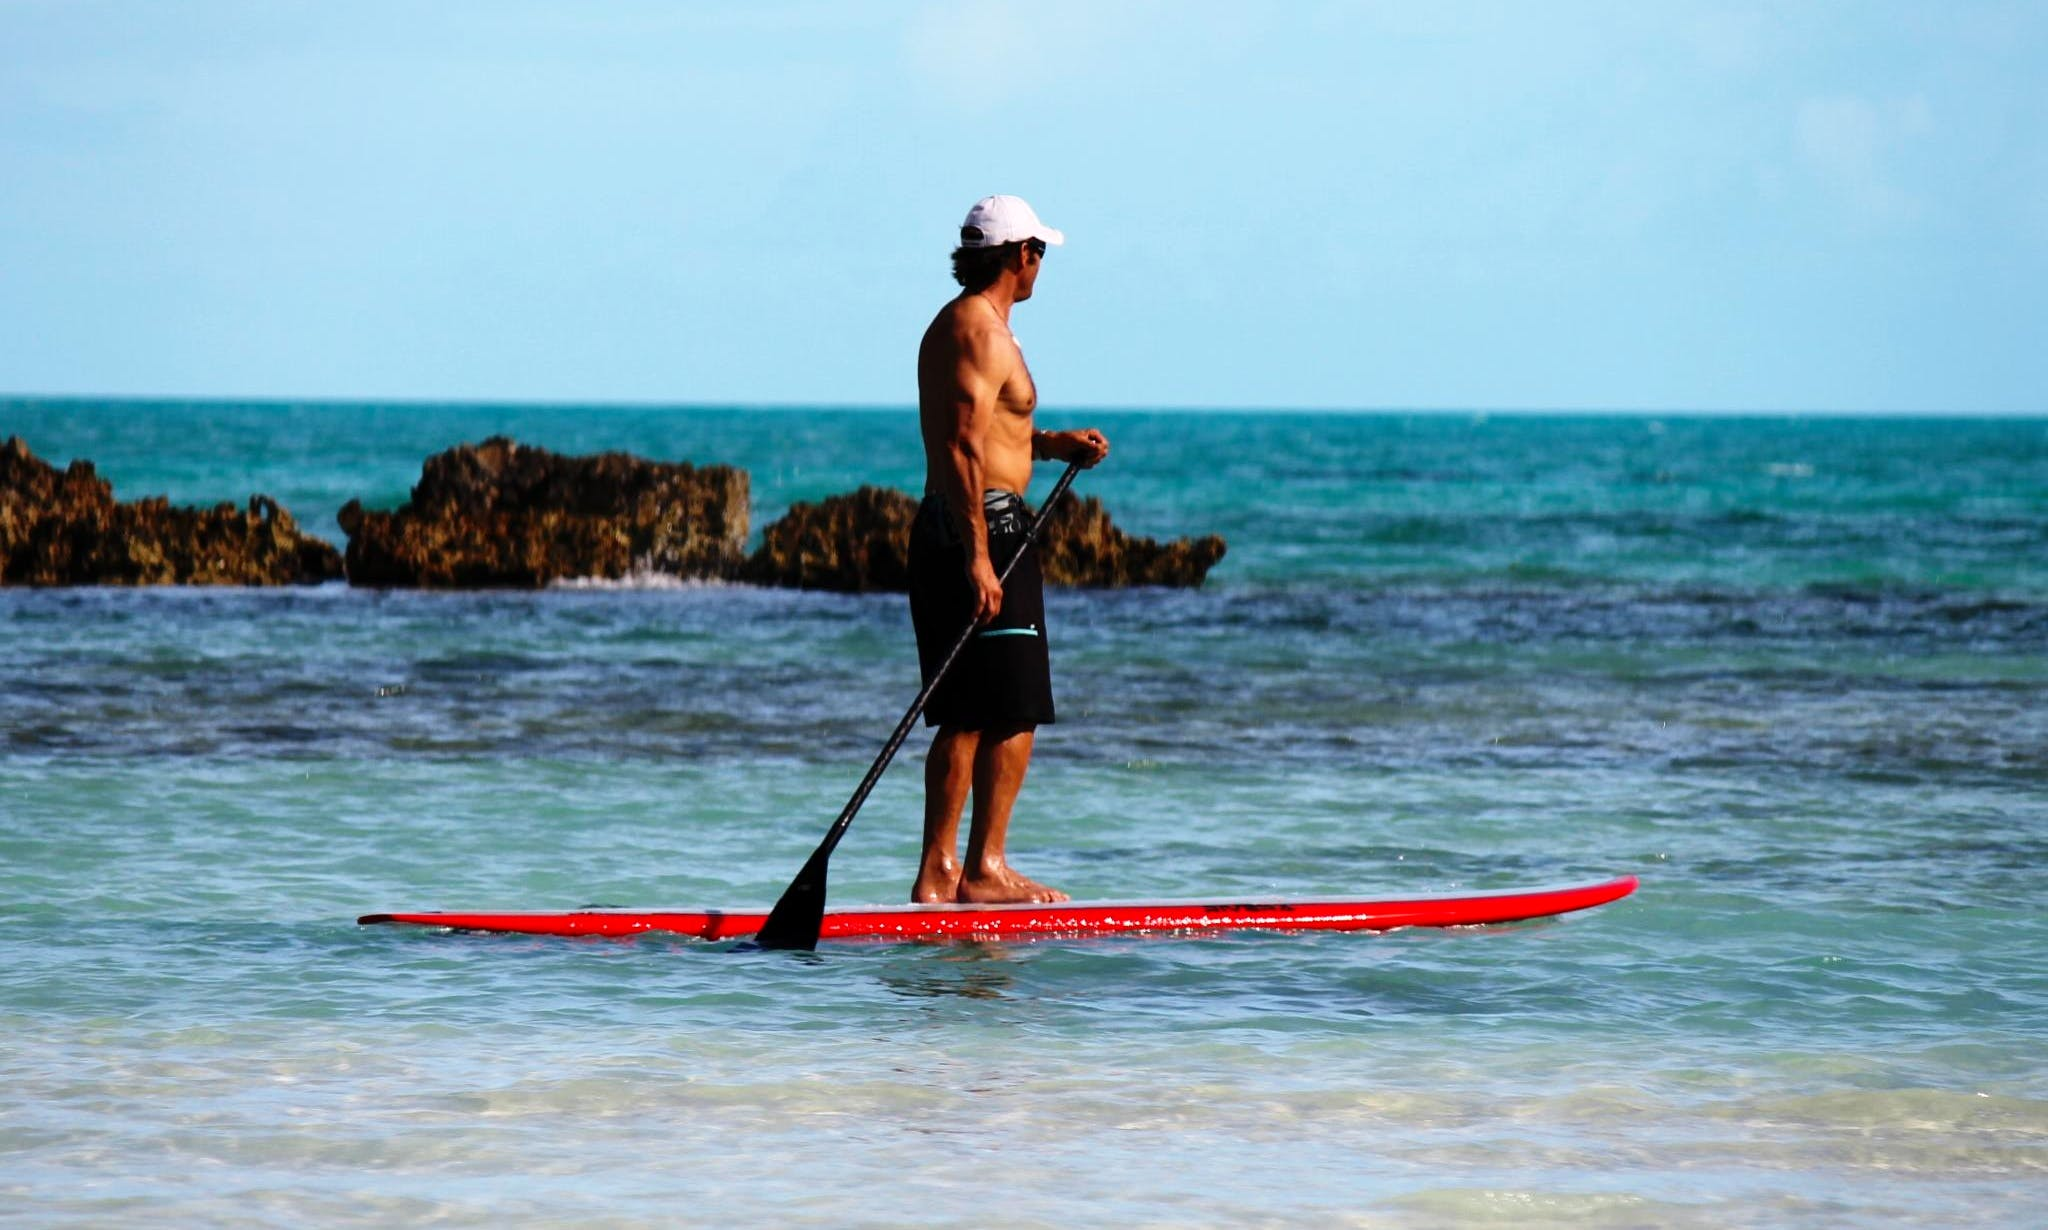 SUP Rentals & Classes in Turks and Caicos Islands